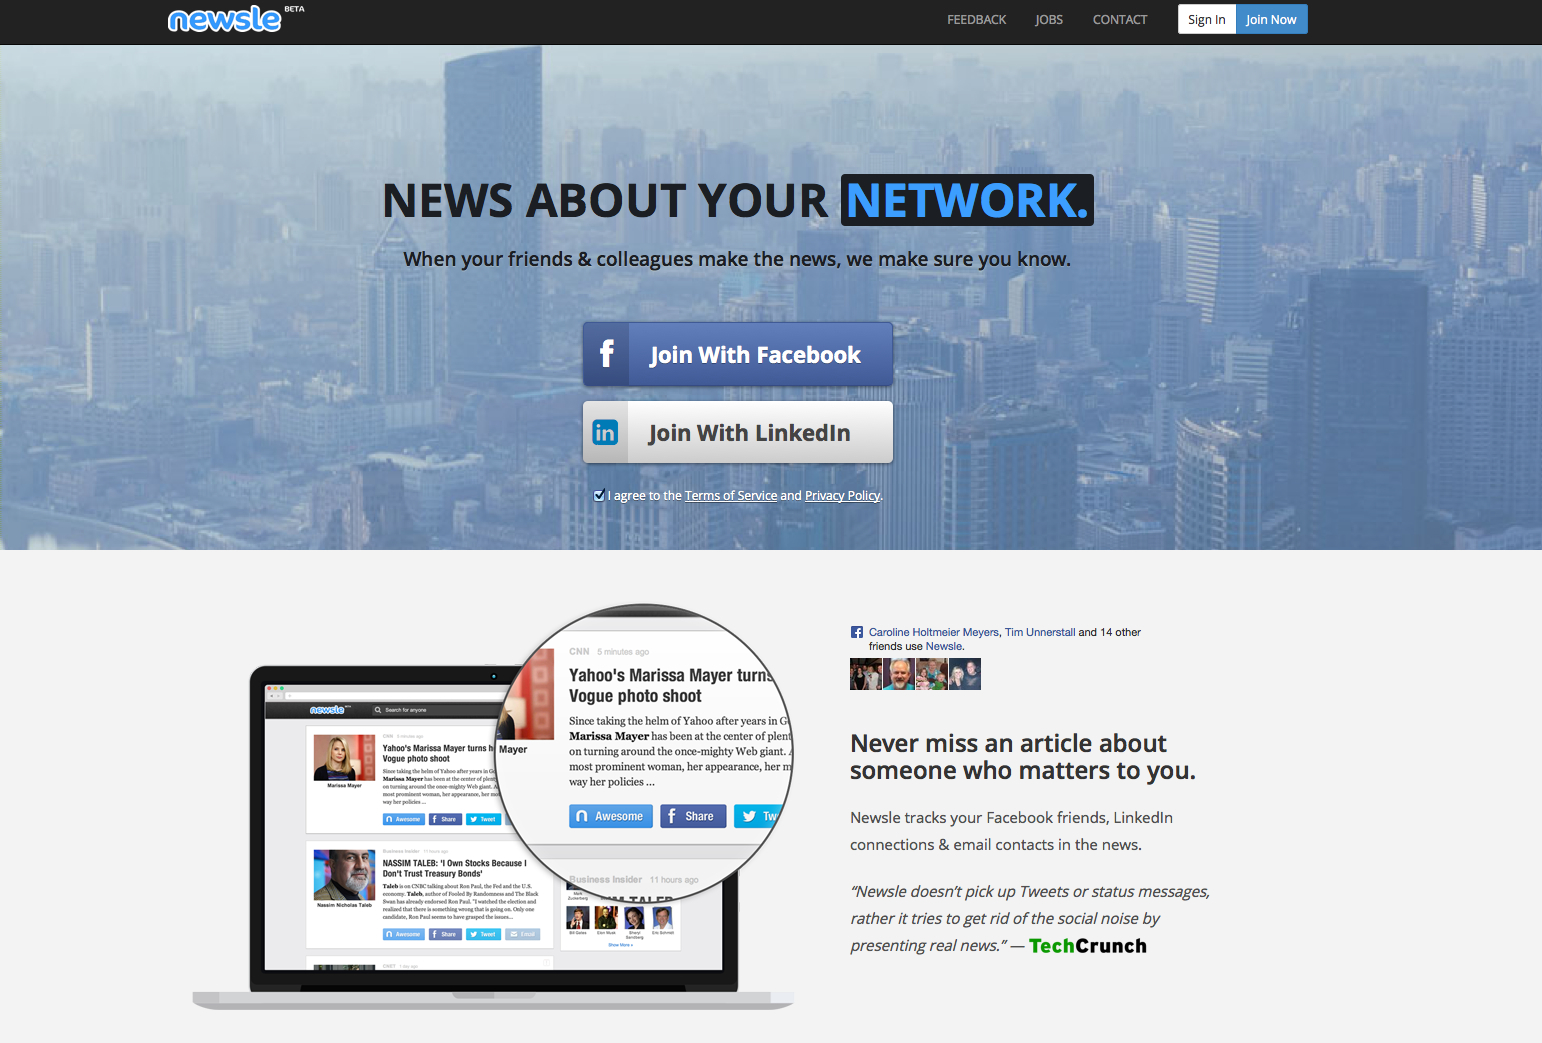 Newsle - News About Your Network 2014-05-21 20-42-53 2014-05-21 20-42-55